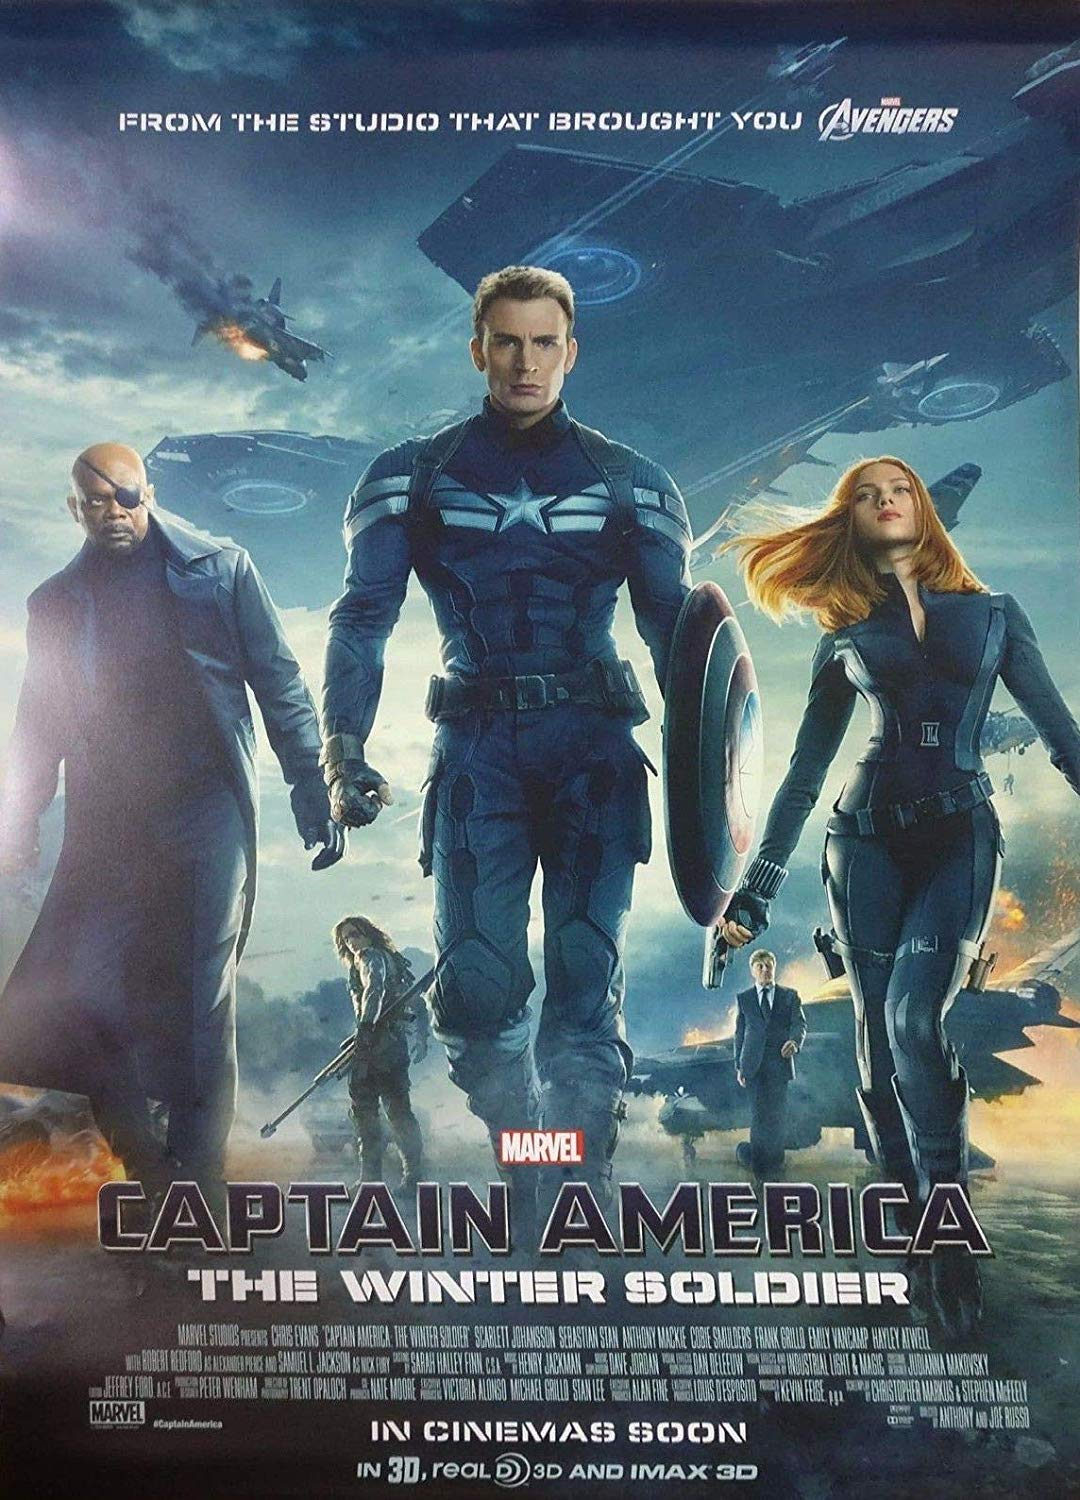 #1 Captain America: The Winter Soldier - Wow. To think the directors of this movie used to make Community episodes. This flick is an amazing call back to the classic spy thriller. But, amid the cat and mouse games, the human element was always there, keeping things personal, grounded, and in short: the BEST (imo) MCU movie to date. -